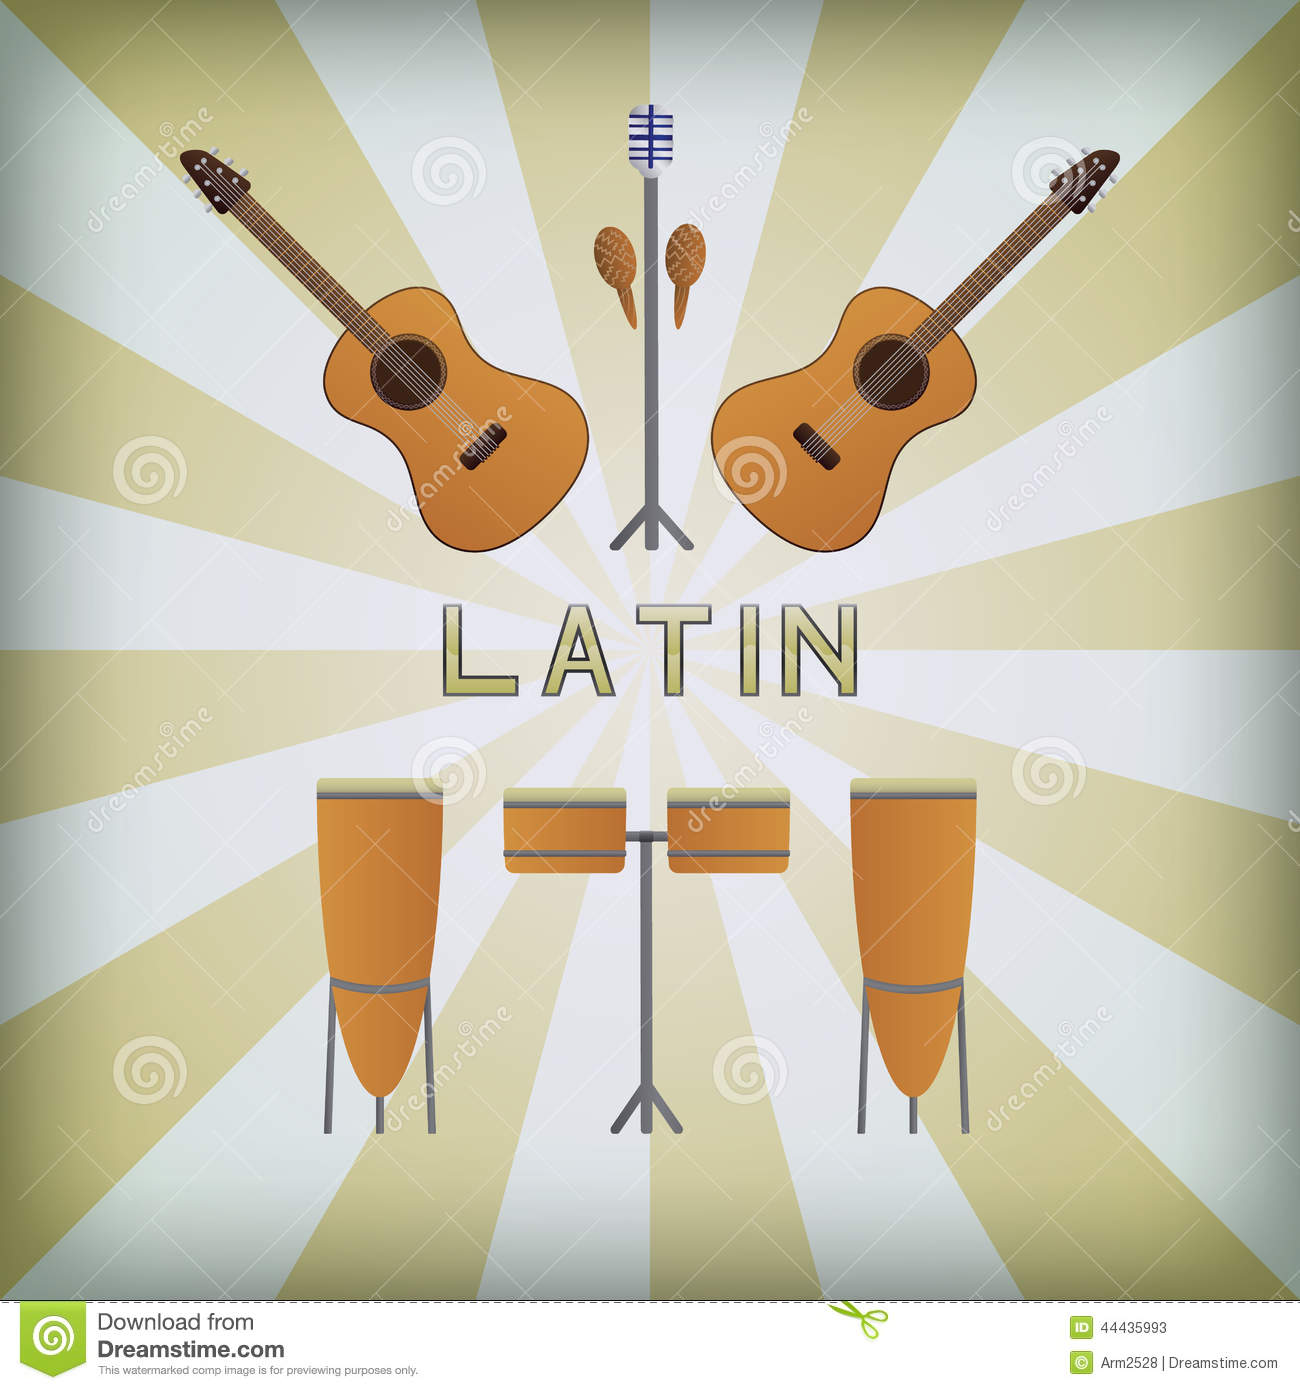 Latin American music and dance